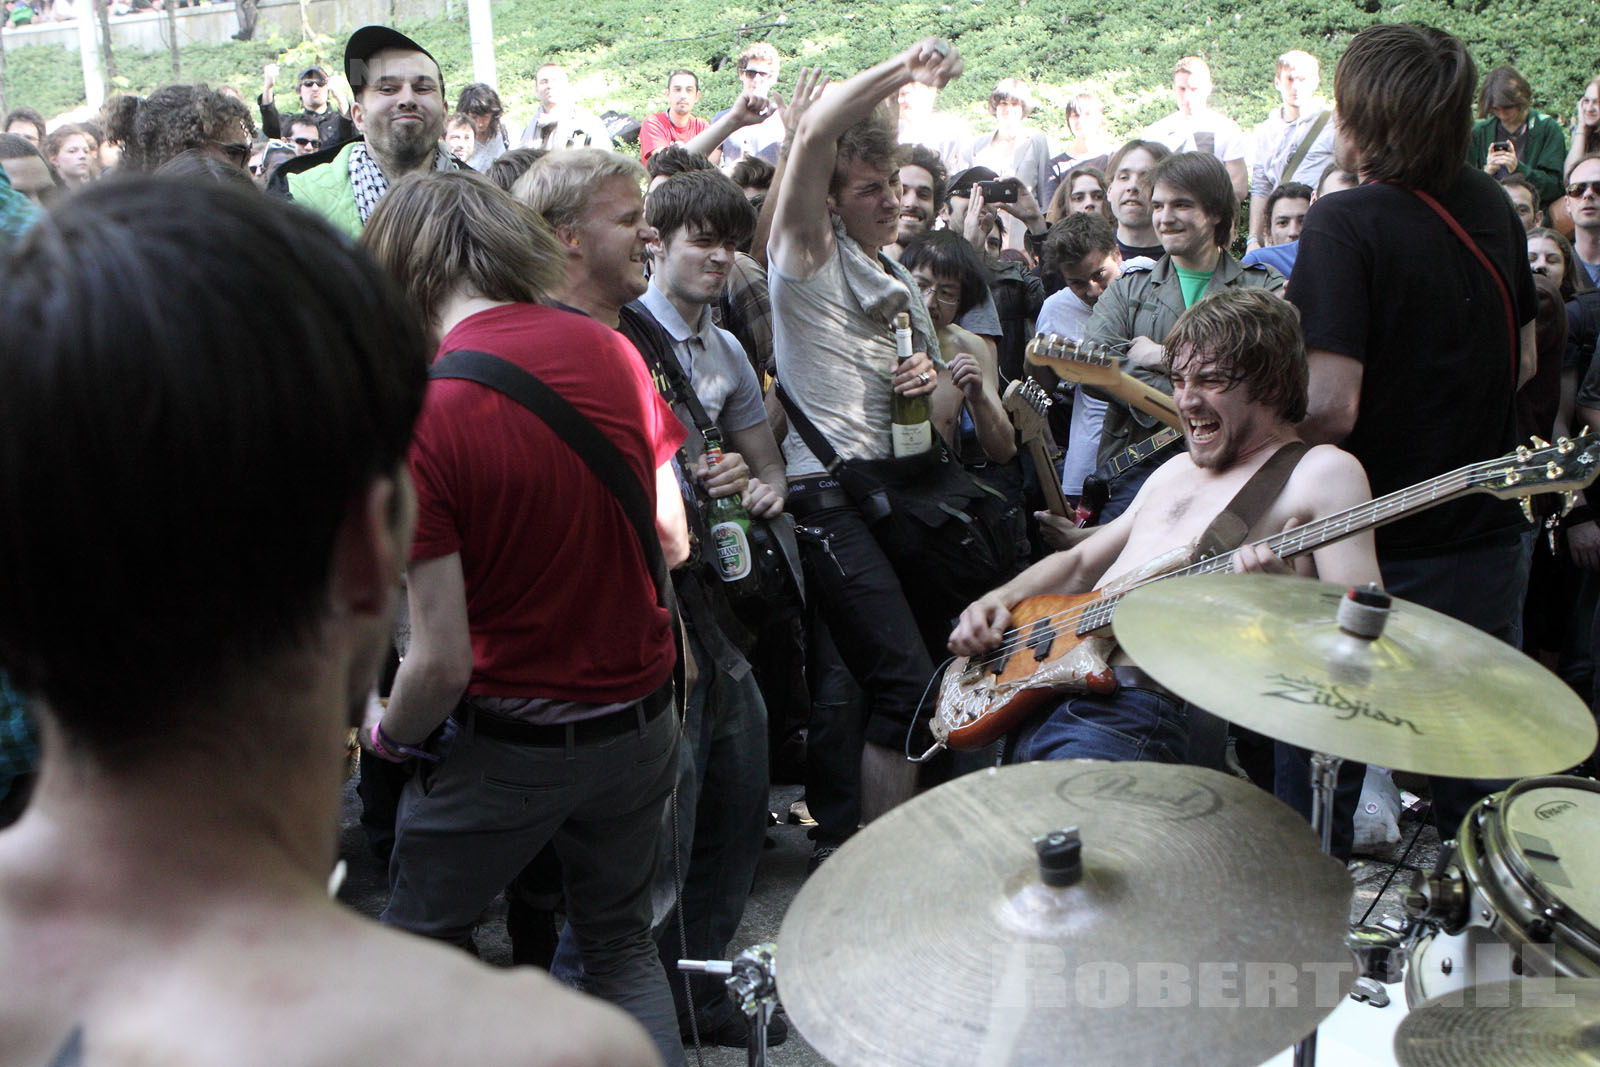 ACTION BEAT - 2011-05-28 - PARIS - Parc de la Villette